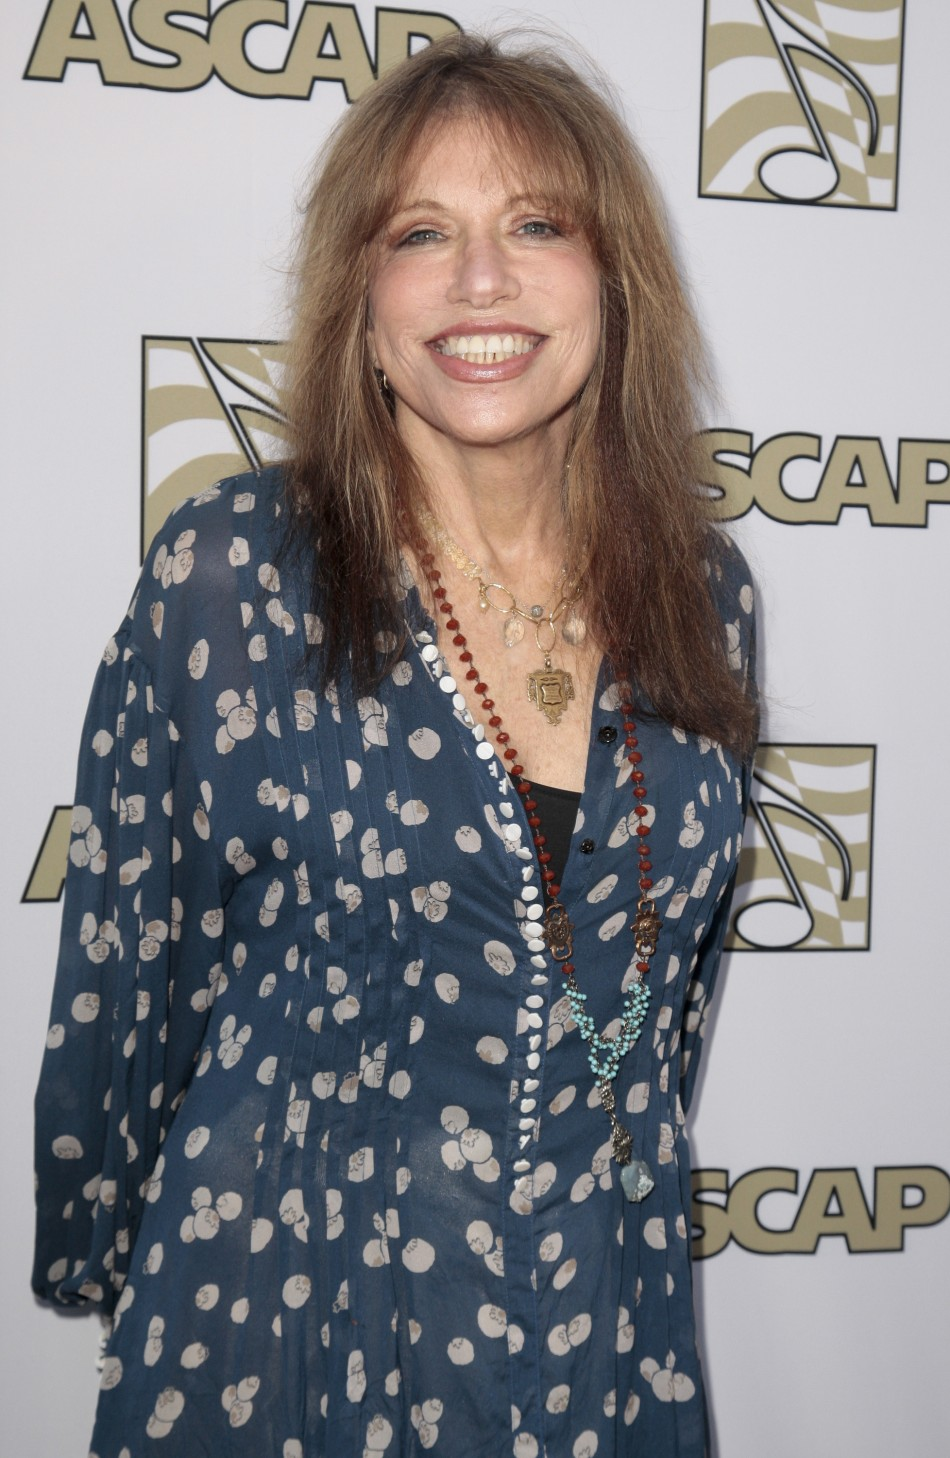 Singer-songwriter Carly Simon arrives at the 29th Annual ASCAP Pop Music Awards in Hollywood, California